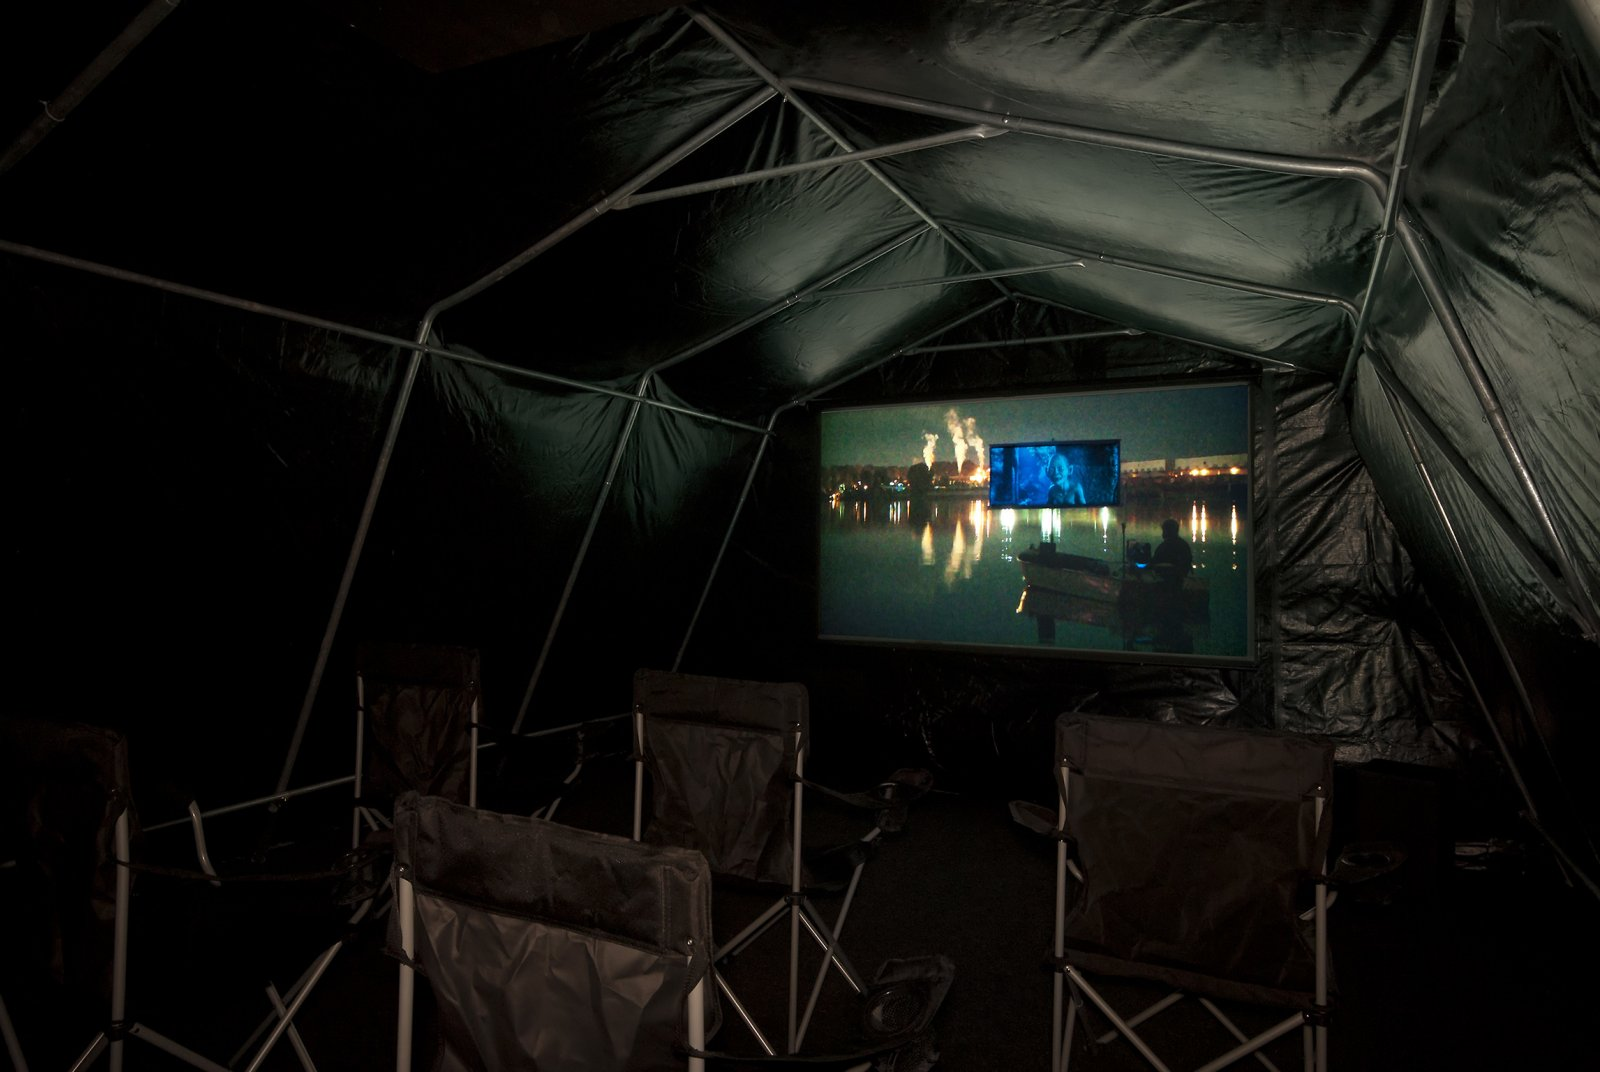 Kevin Schmidt, Autonomous Projection Room #1, 2010, tarp, portable garage frame, carpet, roxul, projector, home stereo system, screen, batteries, inverter, camping chairs, 181 x 60 x 105 in. (460 x 152 x 267 cm) by Kevin Schmidt